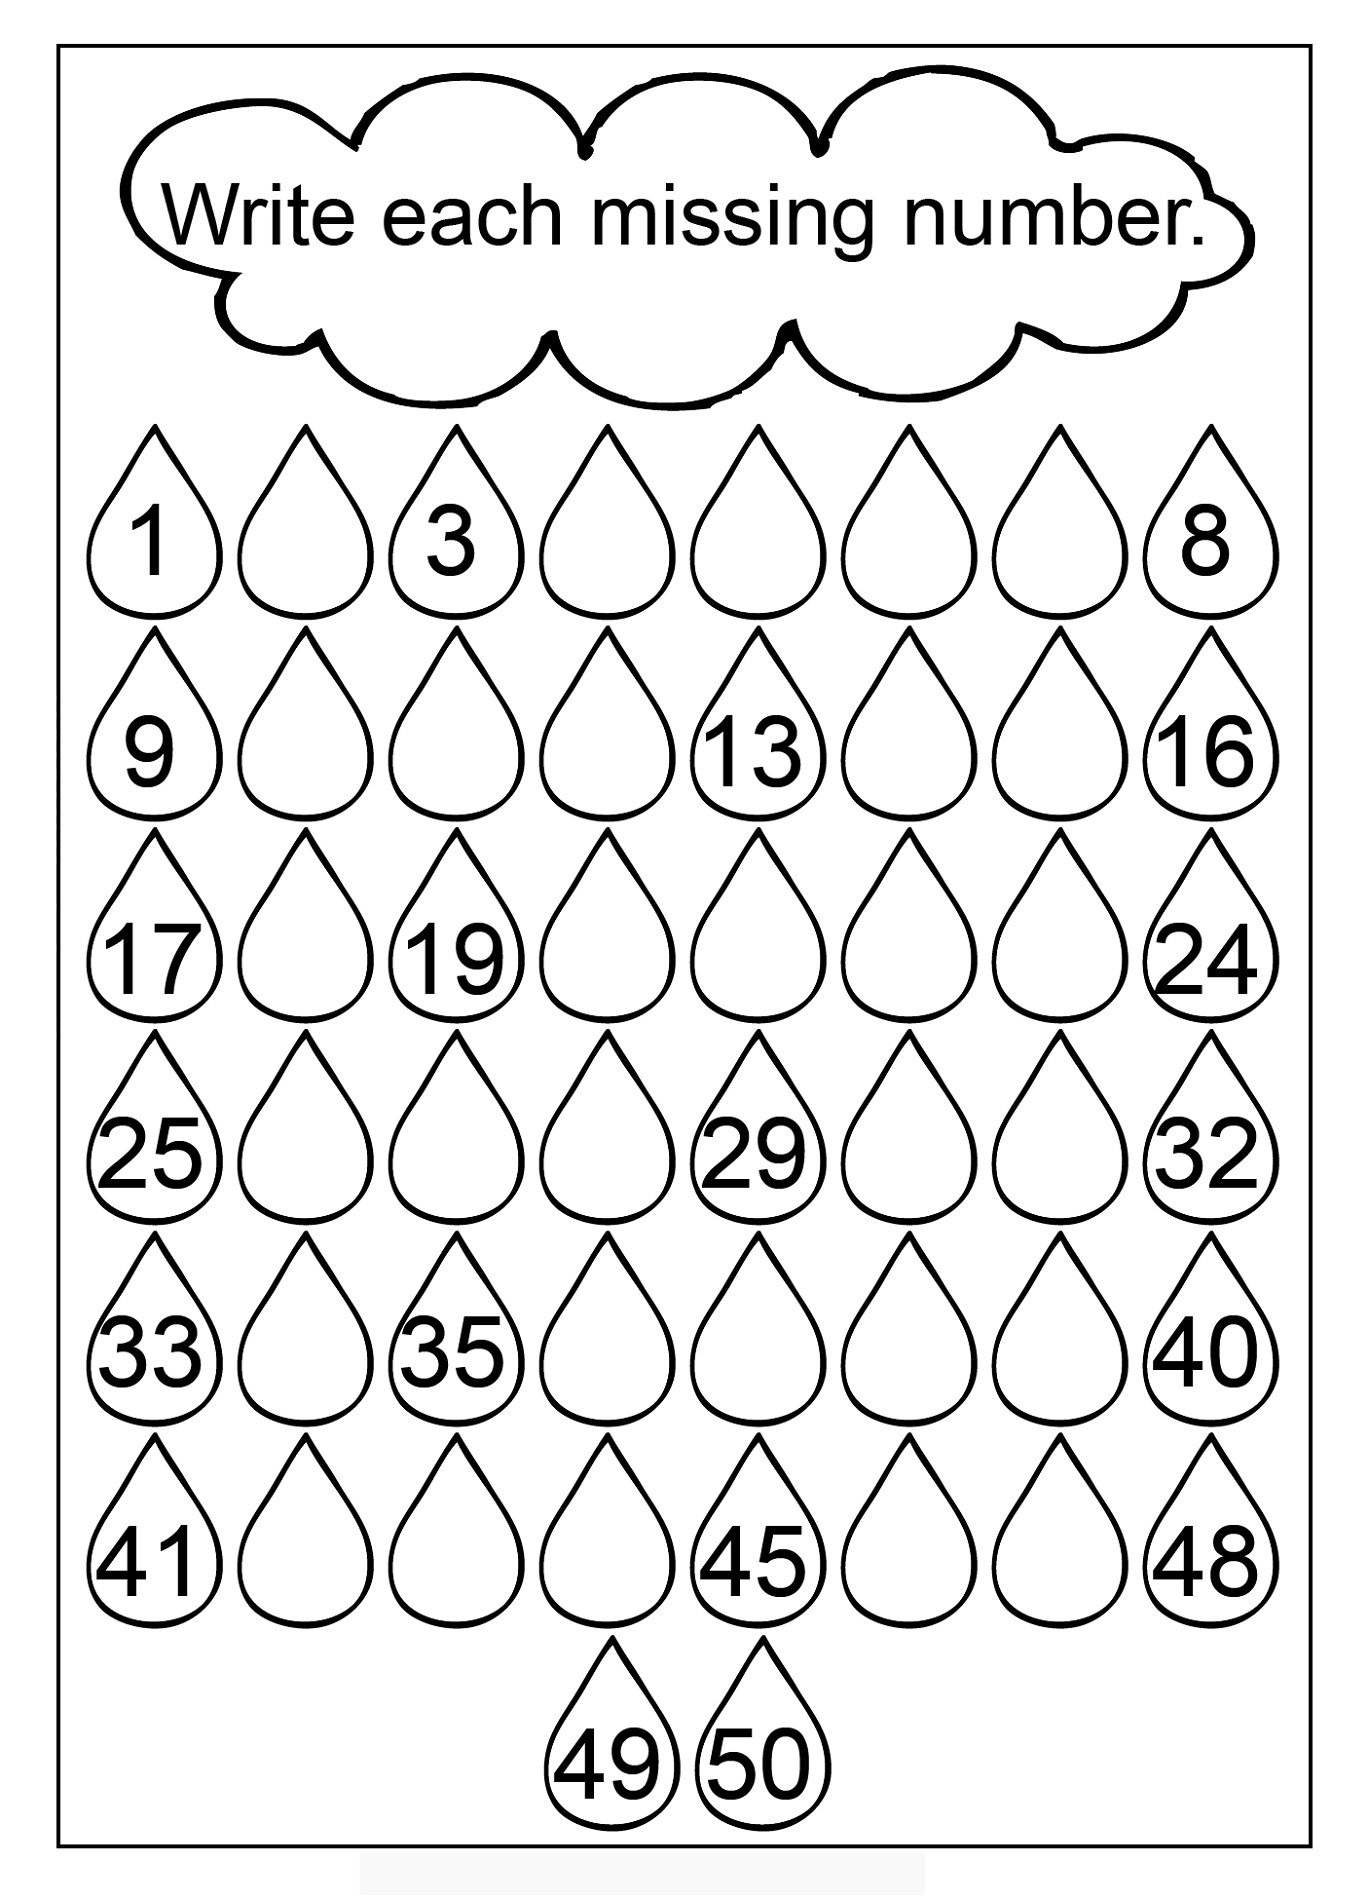 Tally Mark Worksheets for Kindergarten First Grade Math Missing Number Worksheets Printable Tally